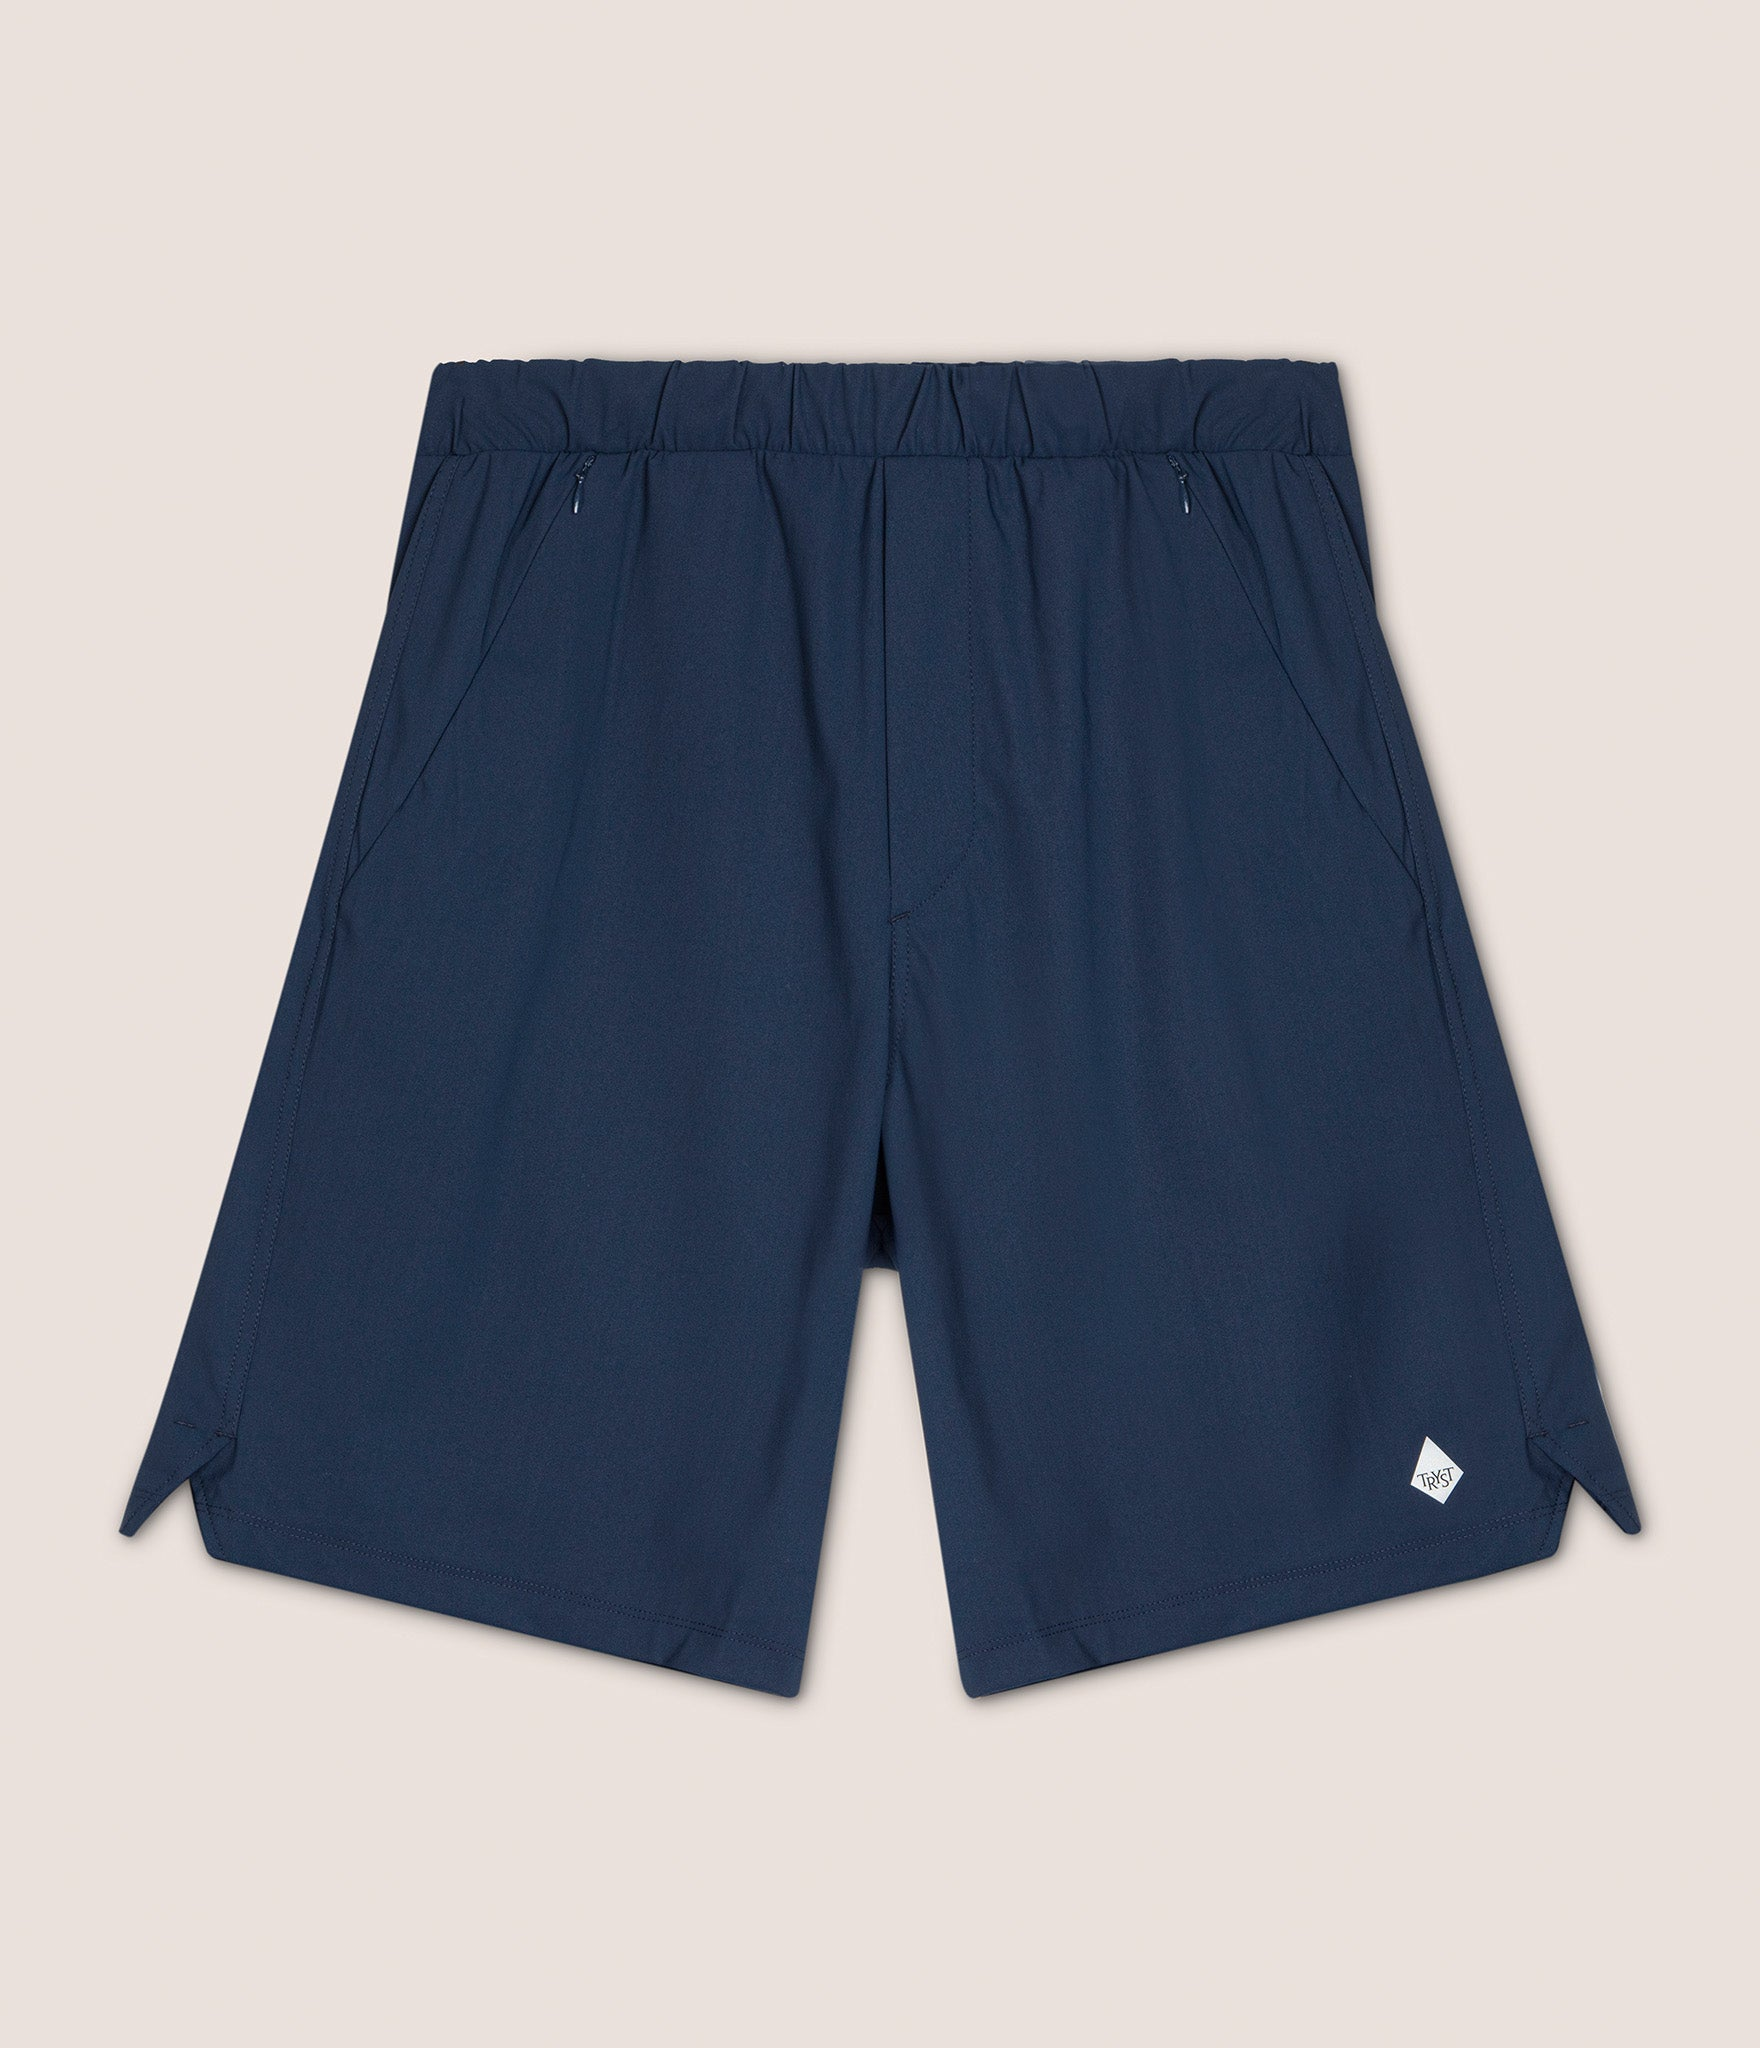 Cape Town shorts </br>Blue